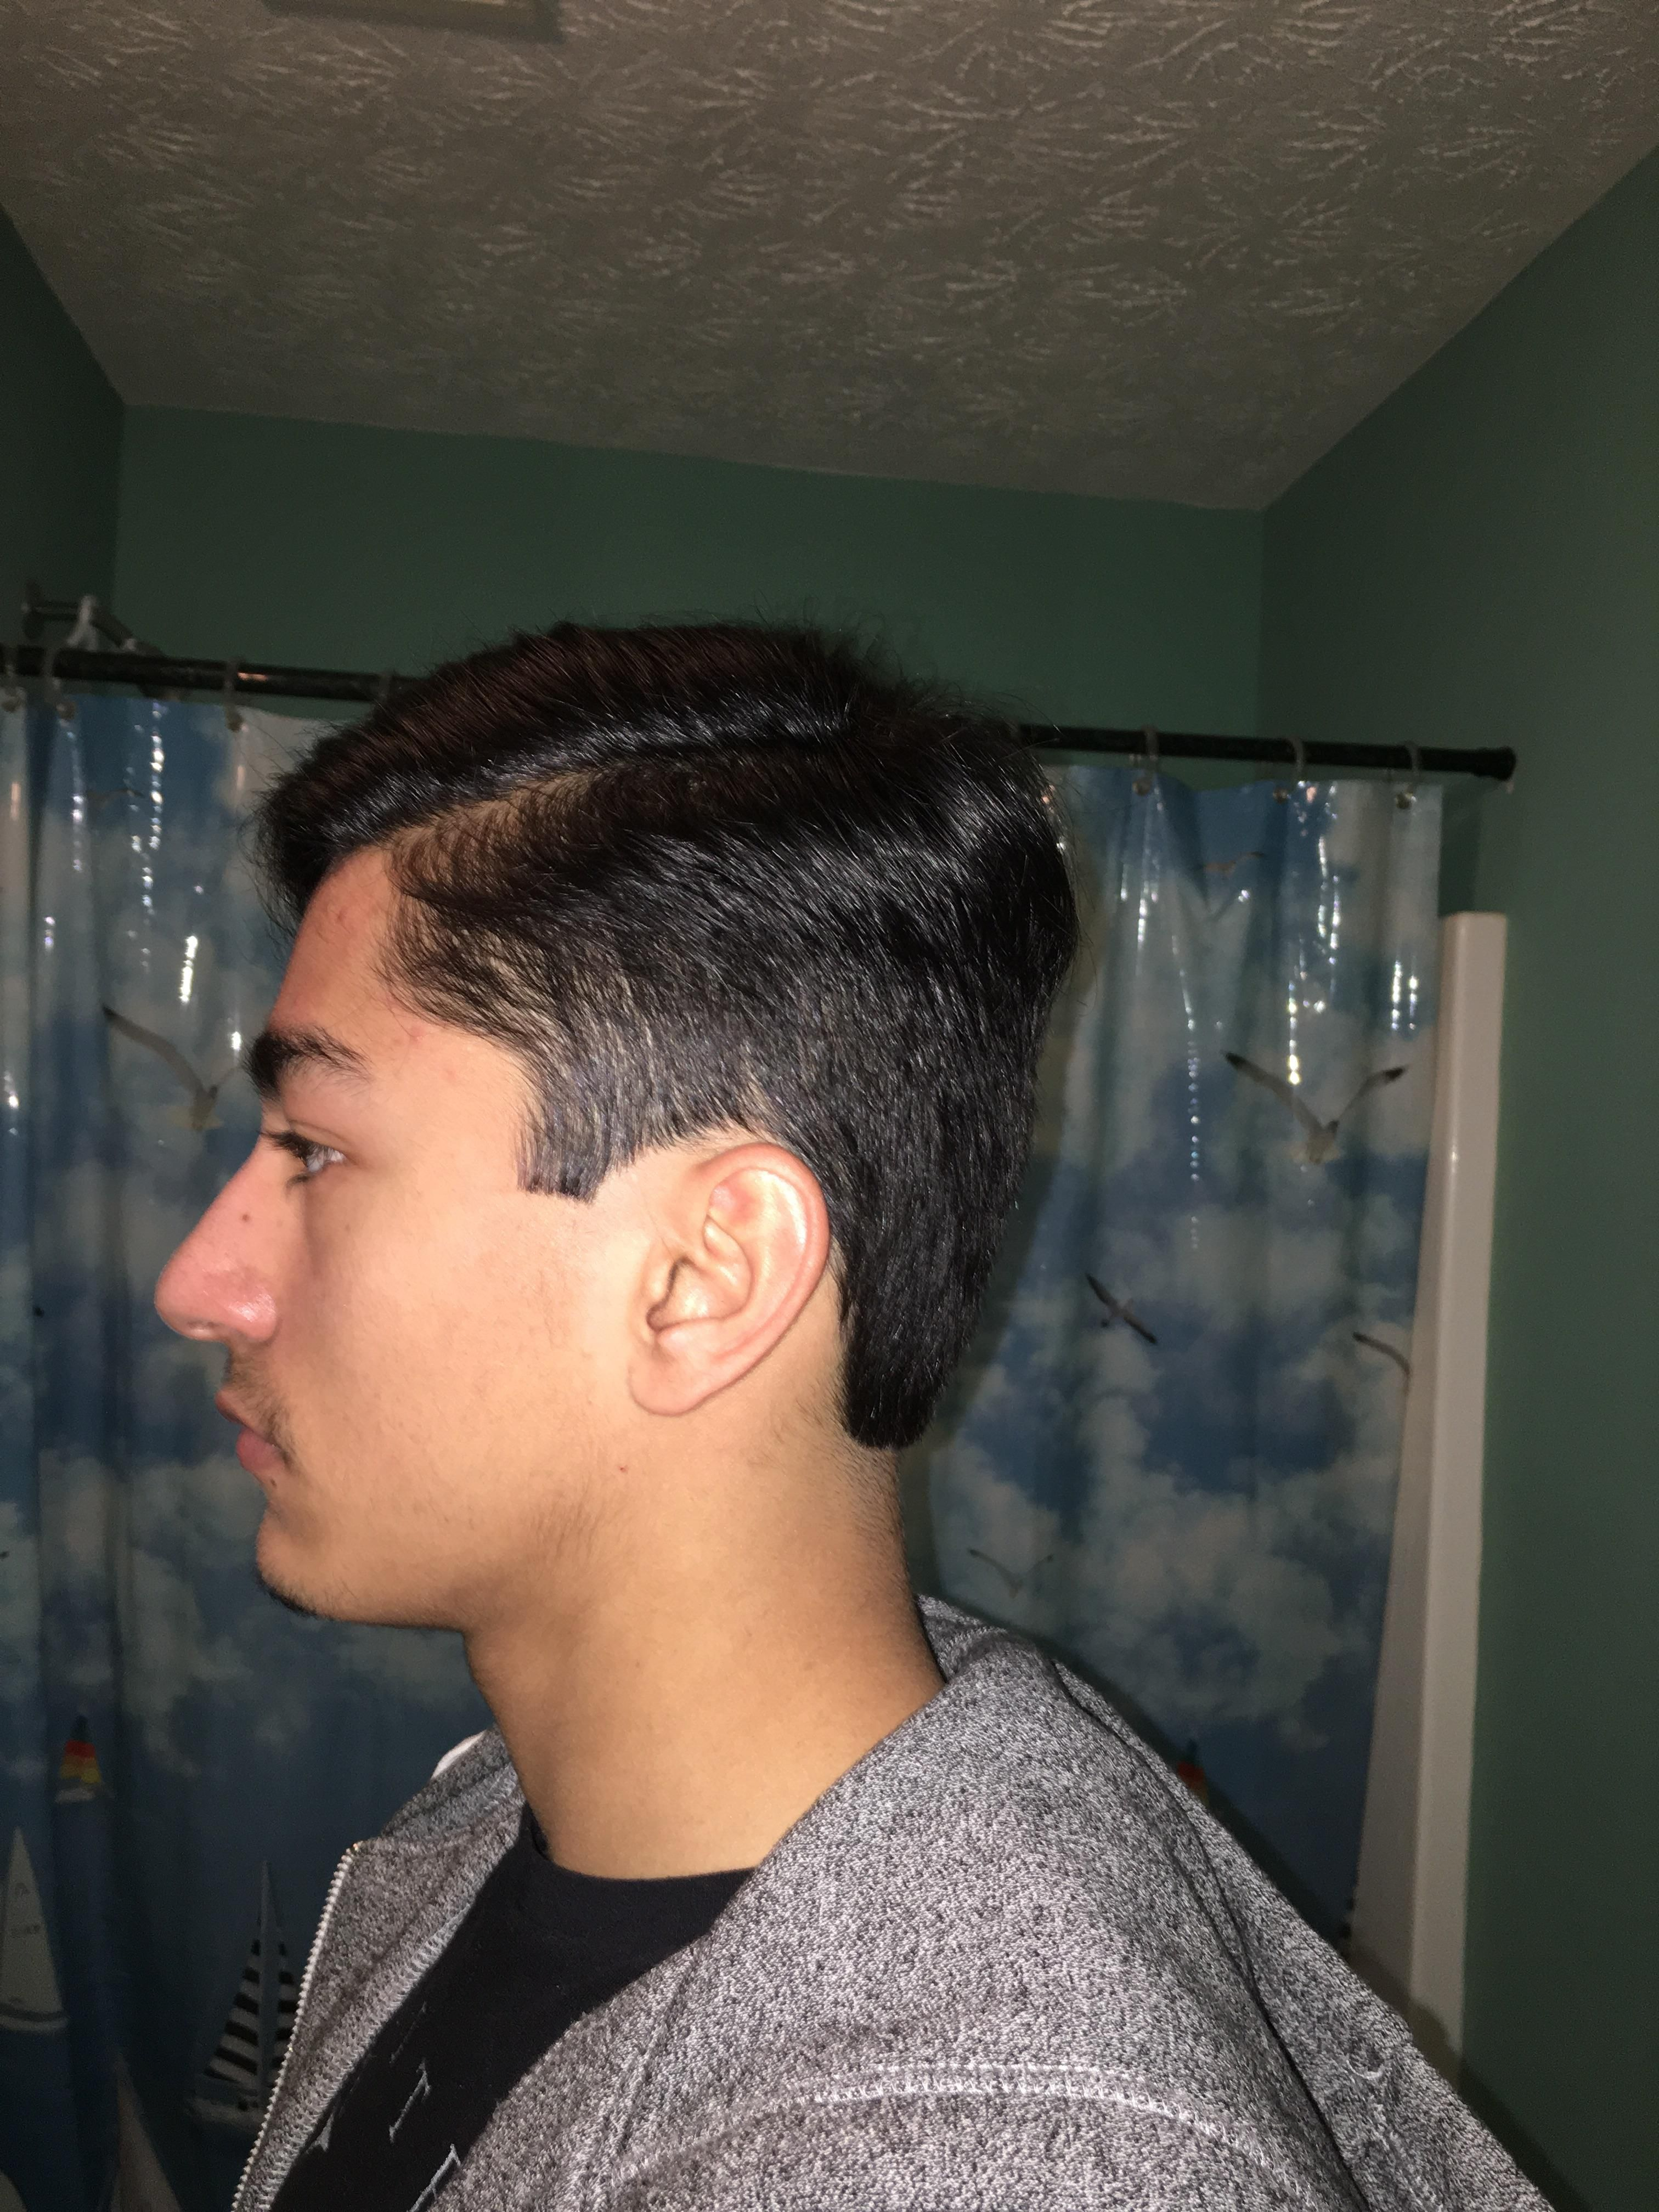 is my hair part too wide/ does this suit me or should i get a